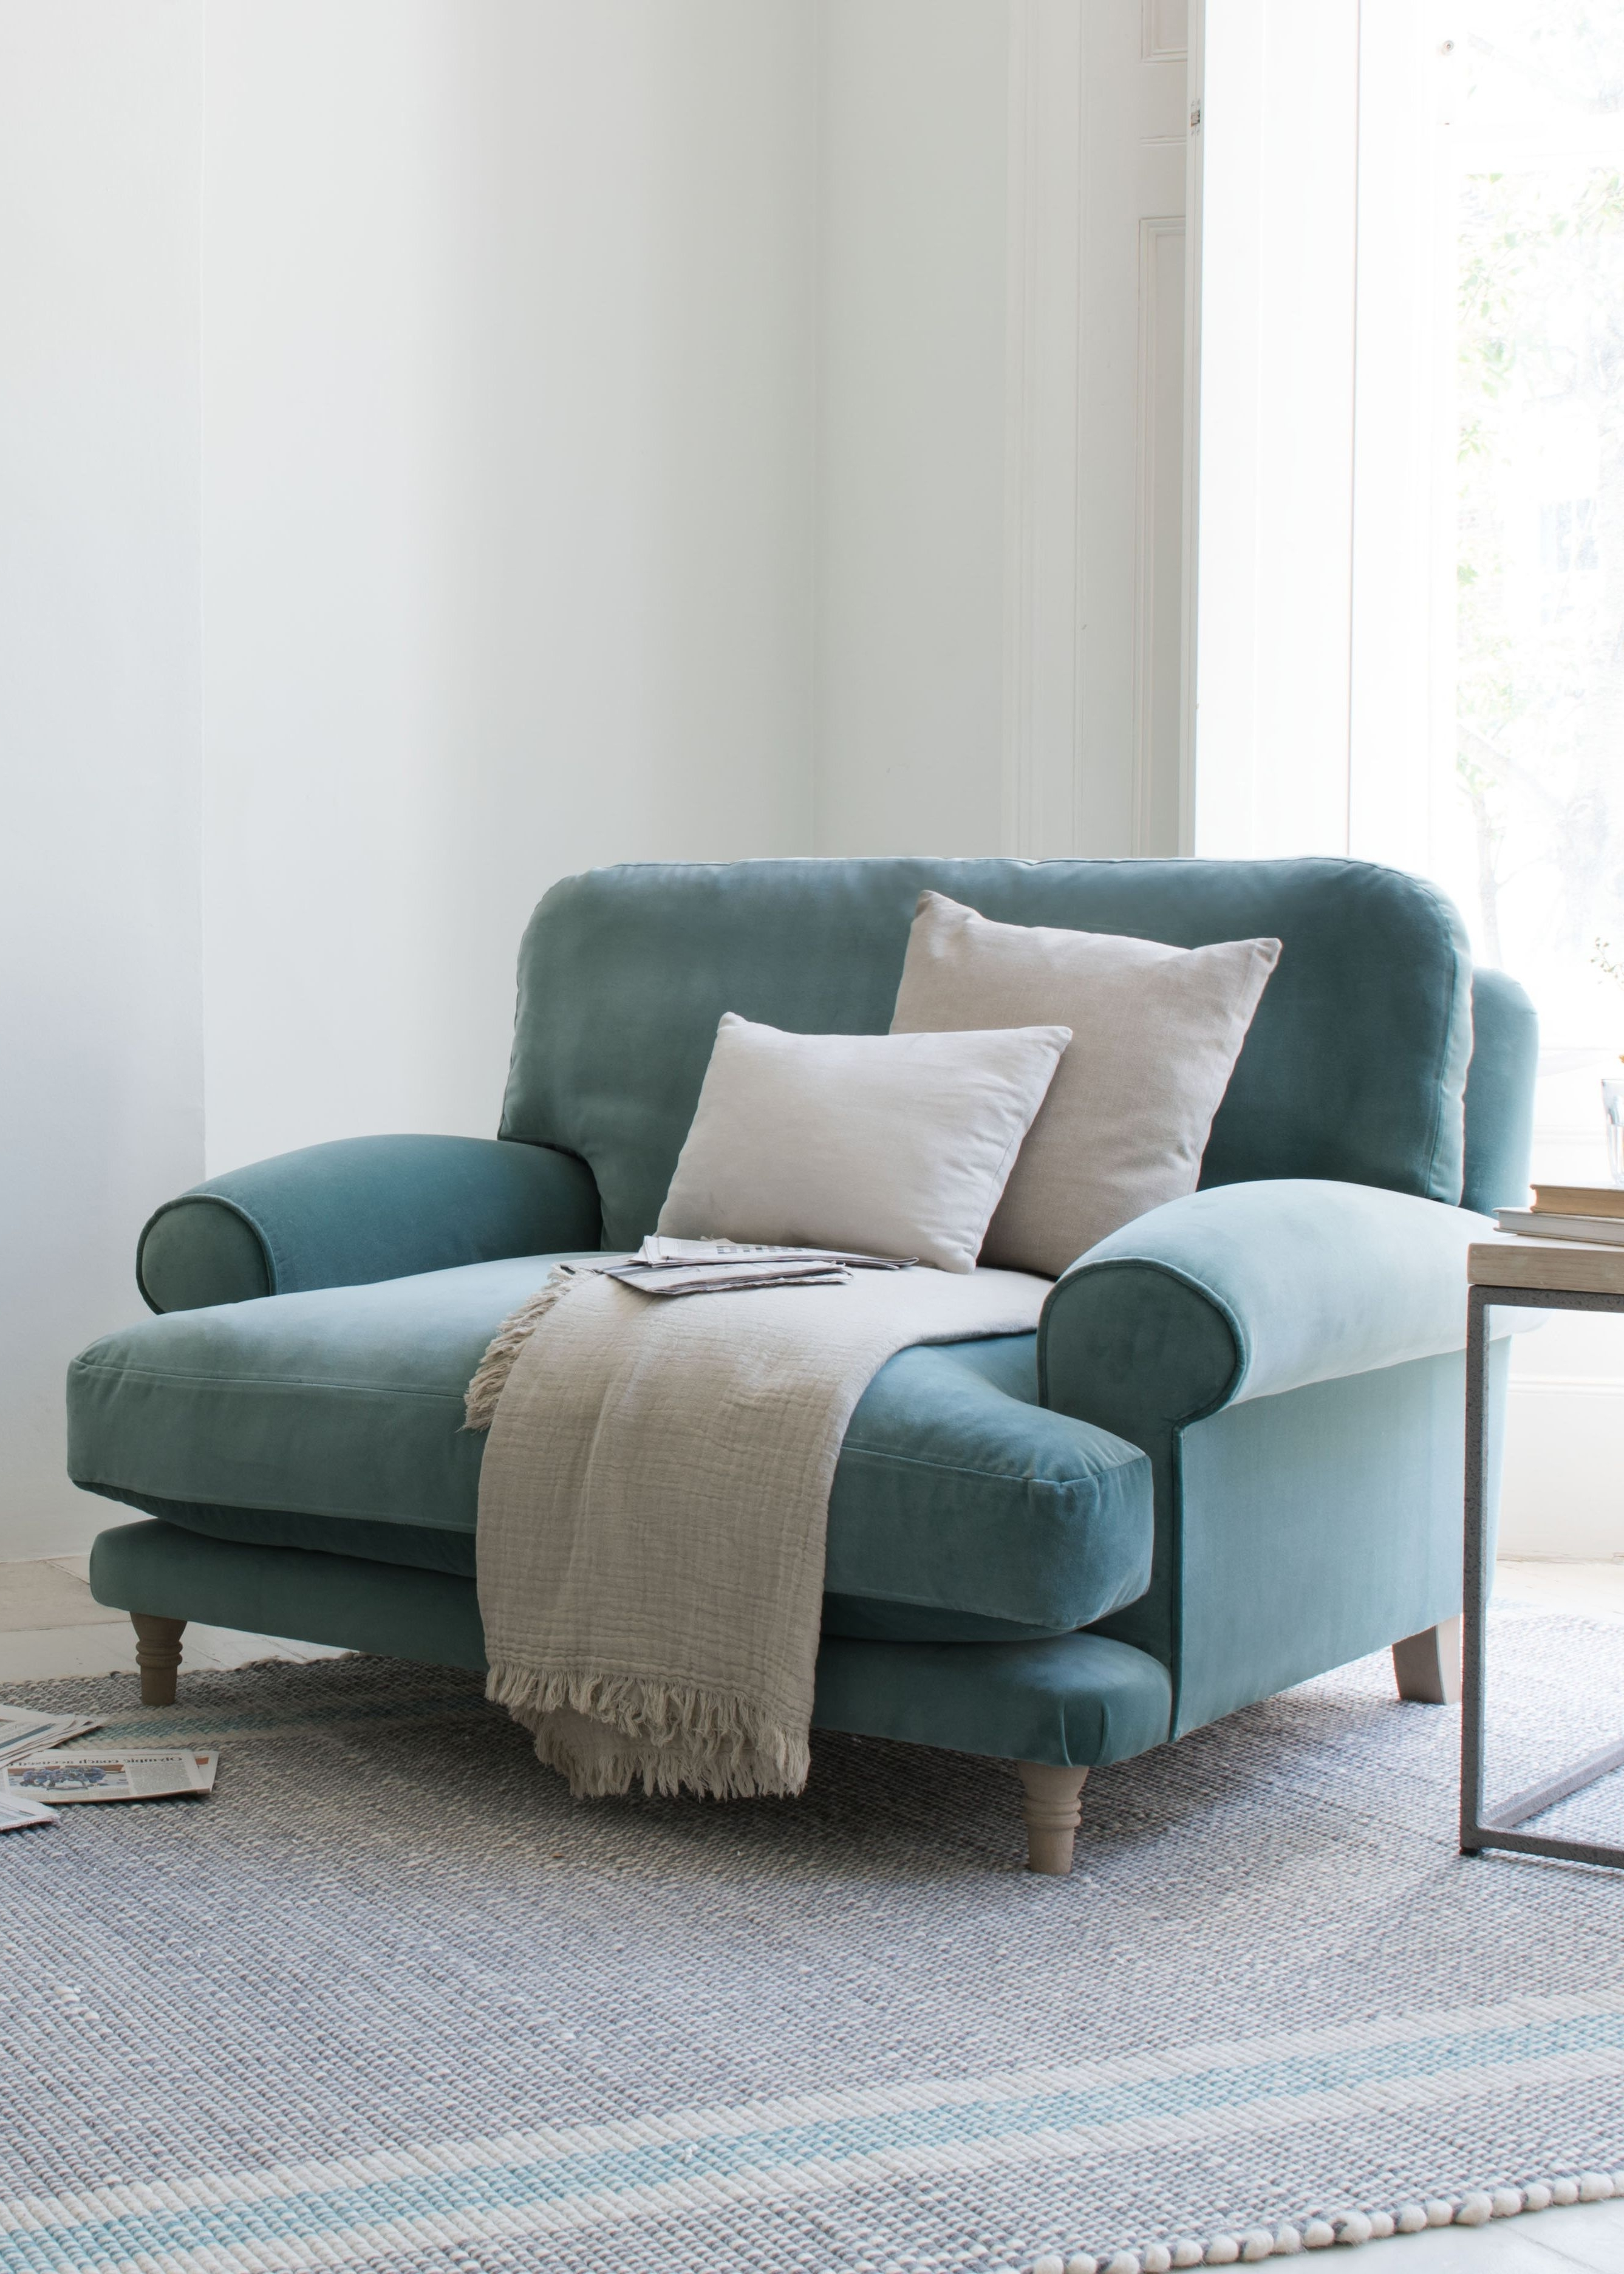 Lounge Chair : Lounge Chair Office Seating Teal Chaise Lounge Pertaining To 2018 Chaise Lounge Computer Chairs (View 10 of 15)